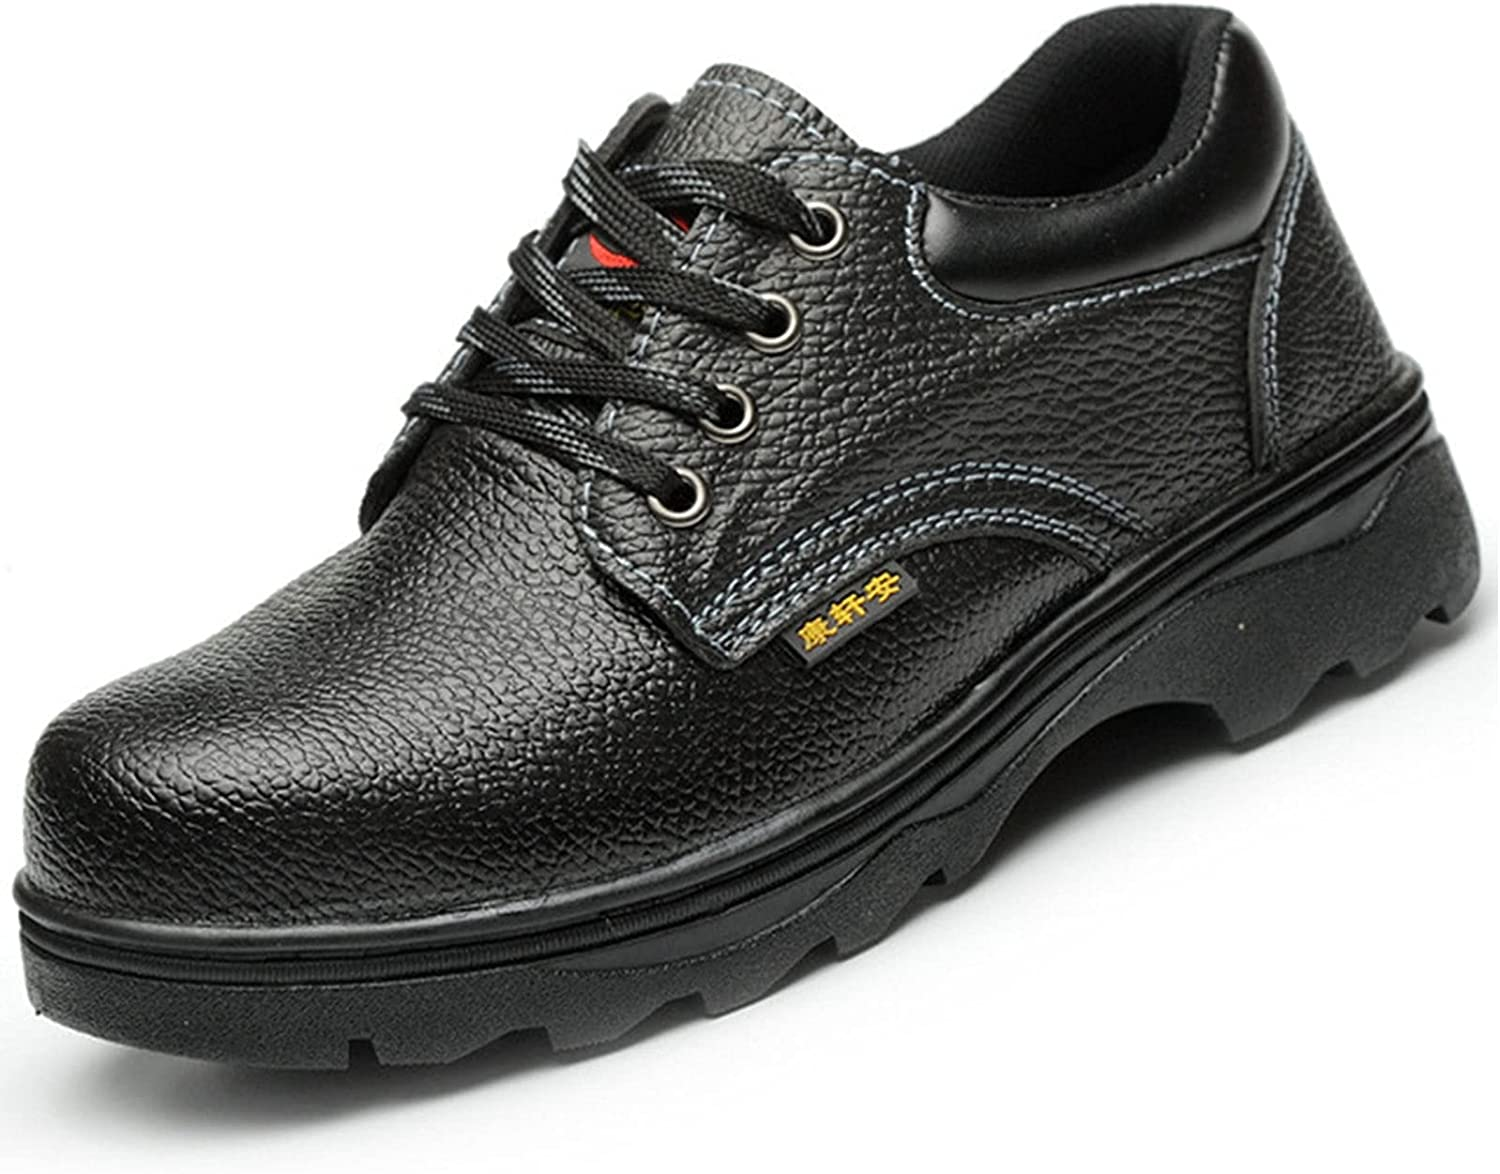 Safety Shoes for Men Steel Toe Ranking TOP17 Work Cap Saf Trainers Lightweight Max 77% OFF